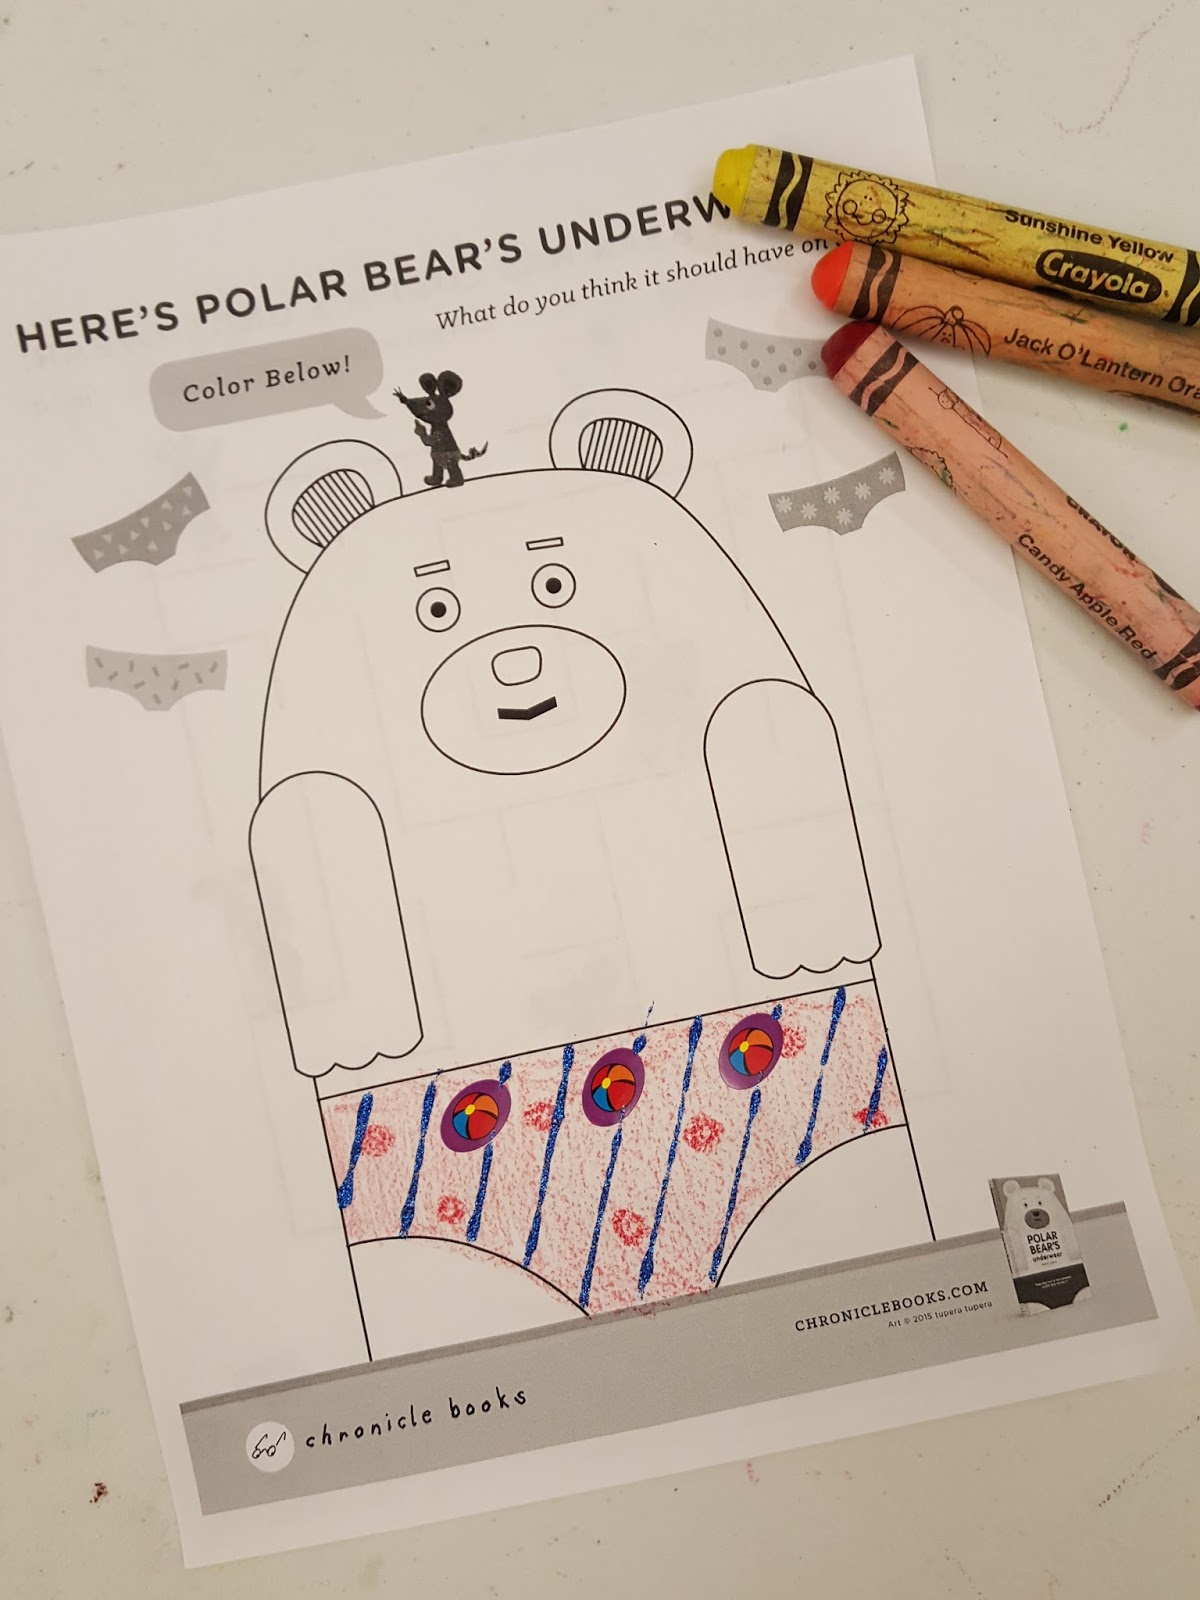 From Polar Bears Publisher I Found Some Activity Sheets To Use For Our Craft Had The Kids Design Their Own Unique Pair Of Underwear Bear With